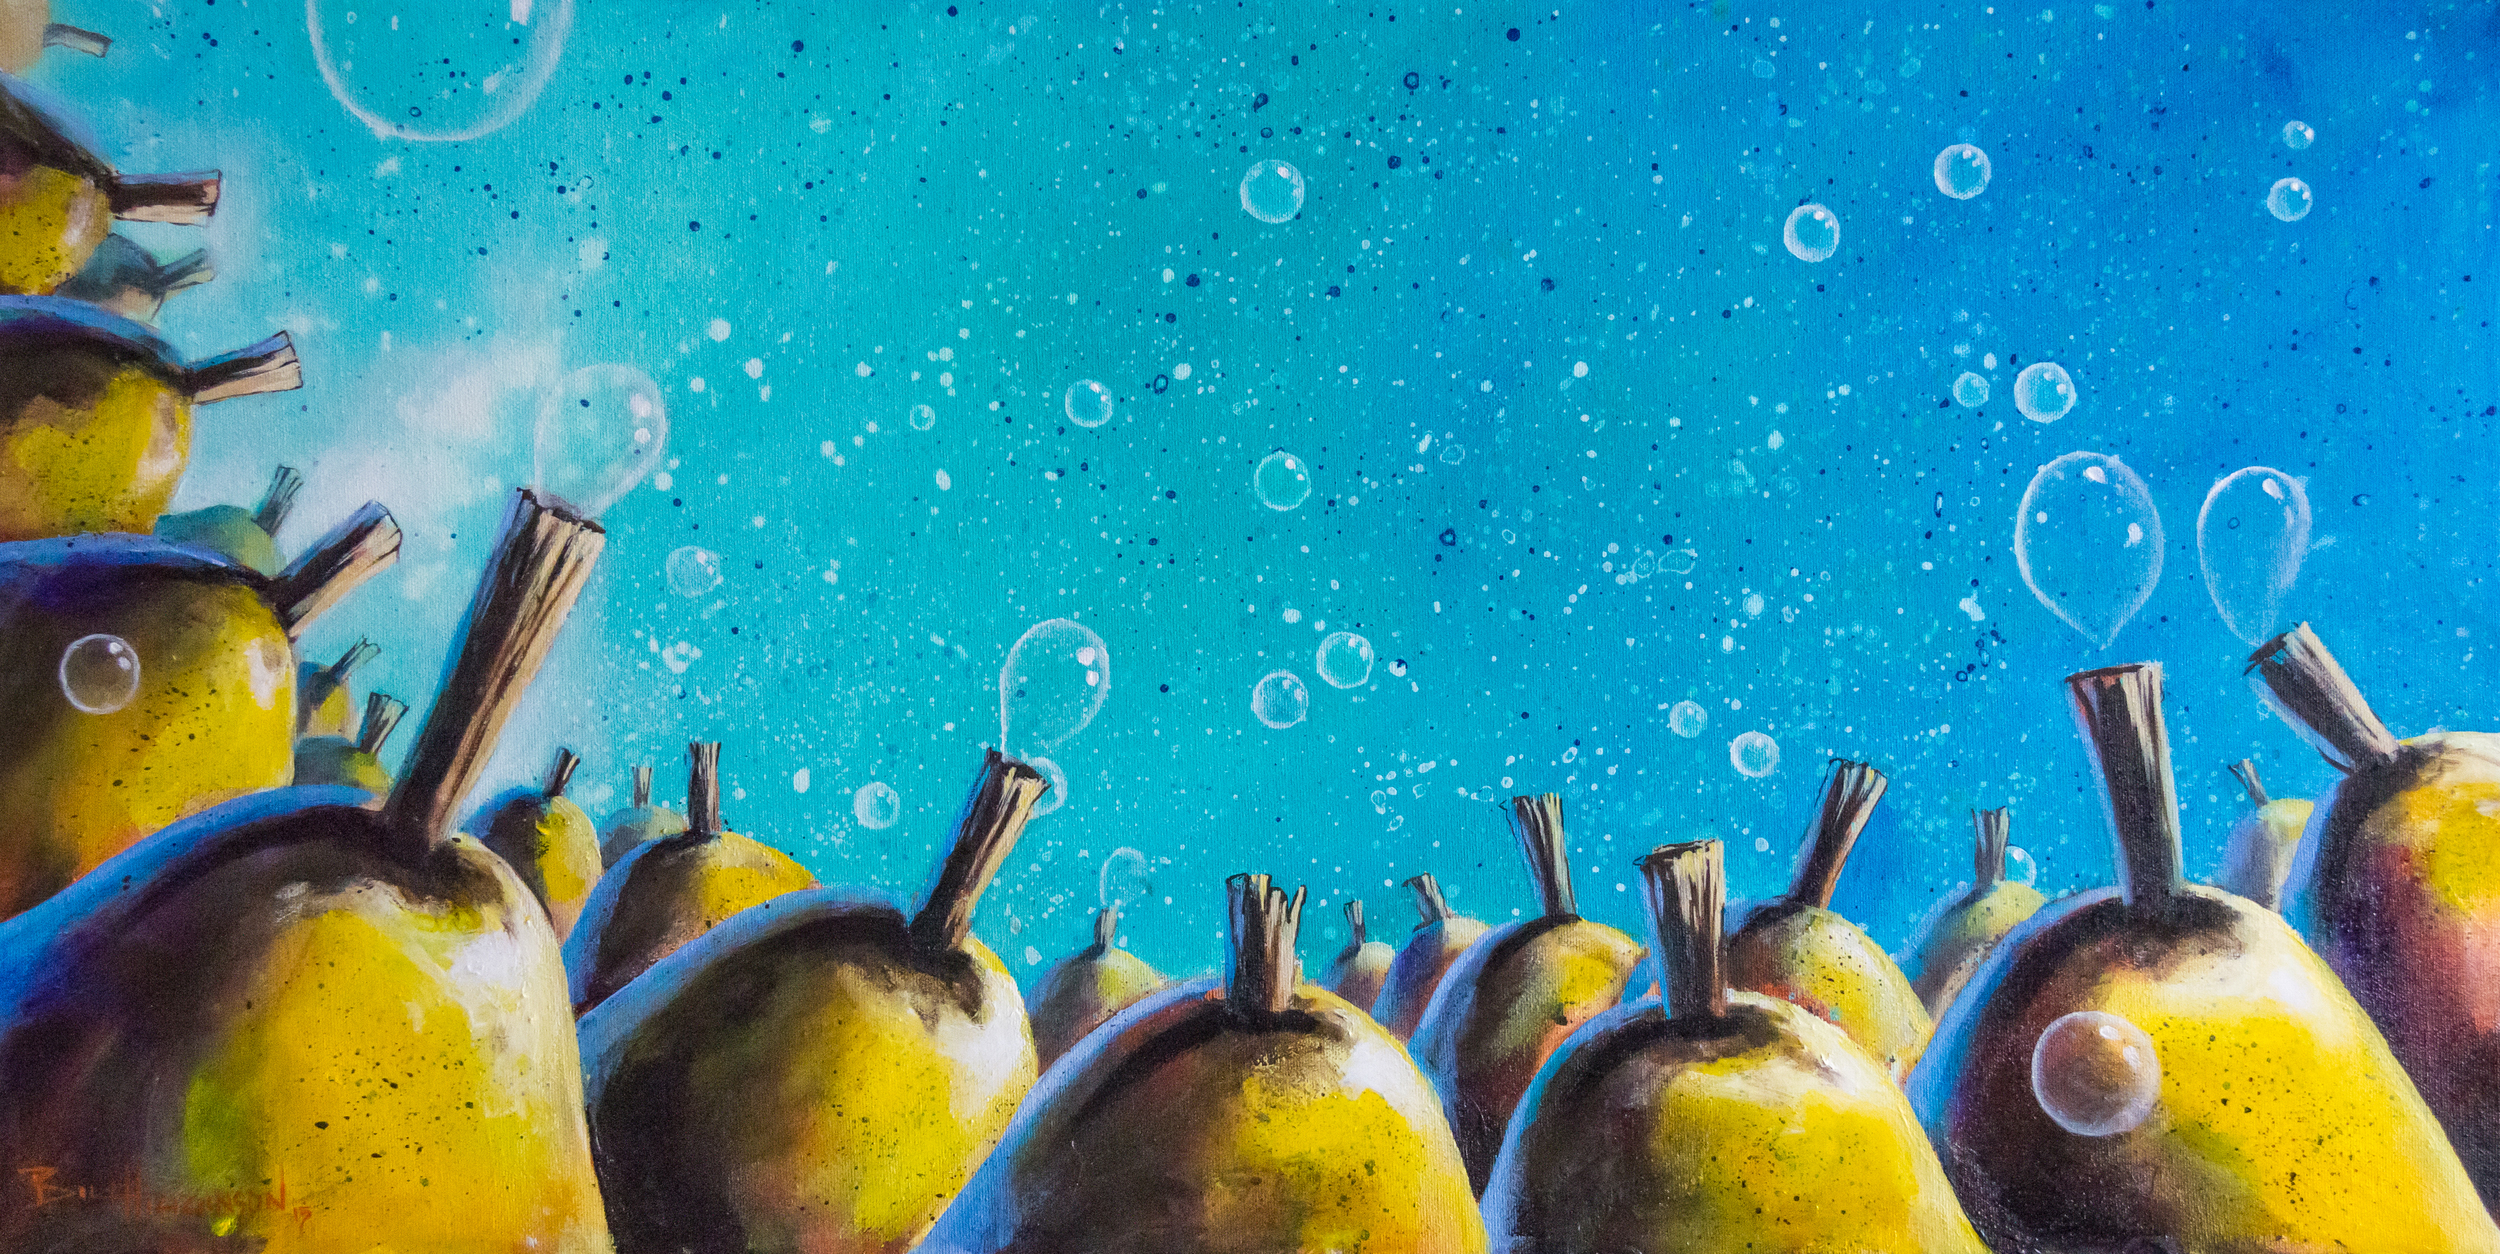 bill_higginson_The Bubble Blowers-surrealism_painting-acrylic-painting-pears-fruit-canvas